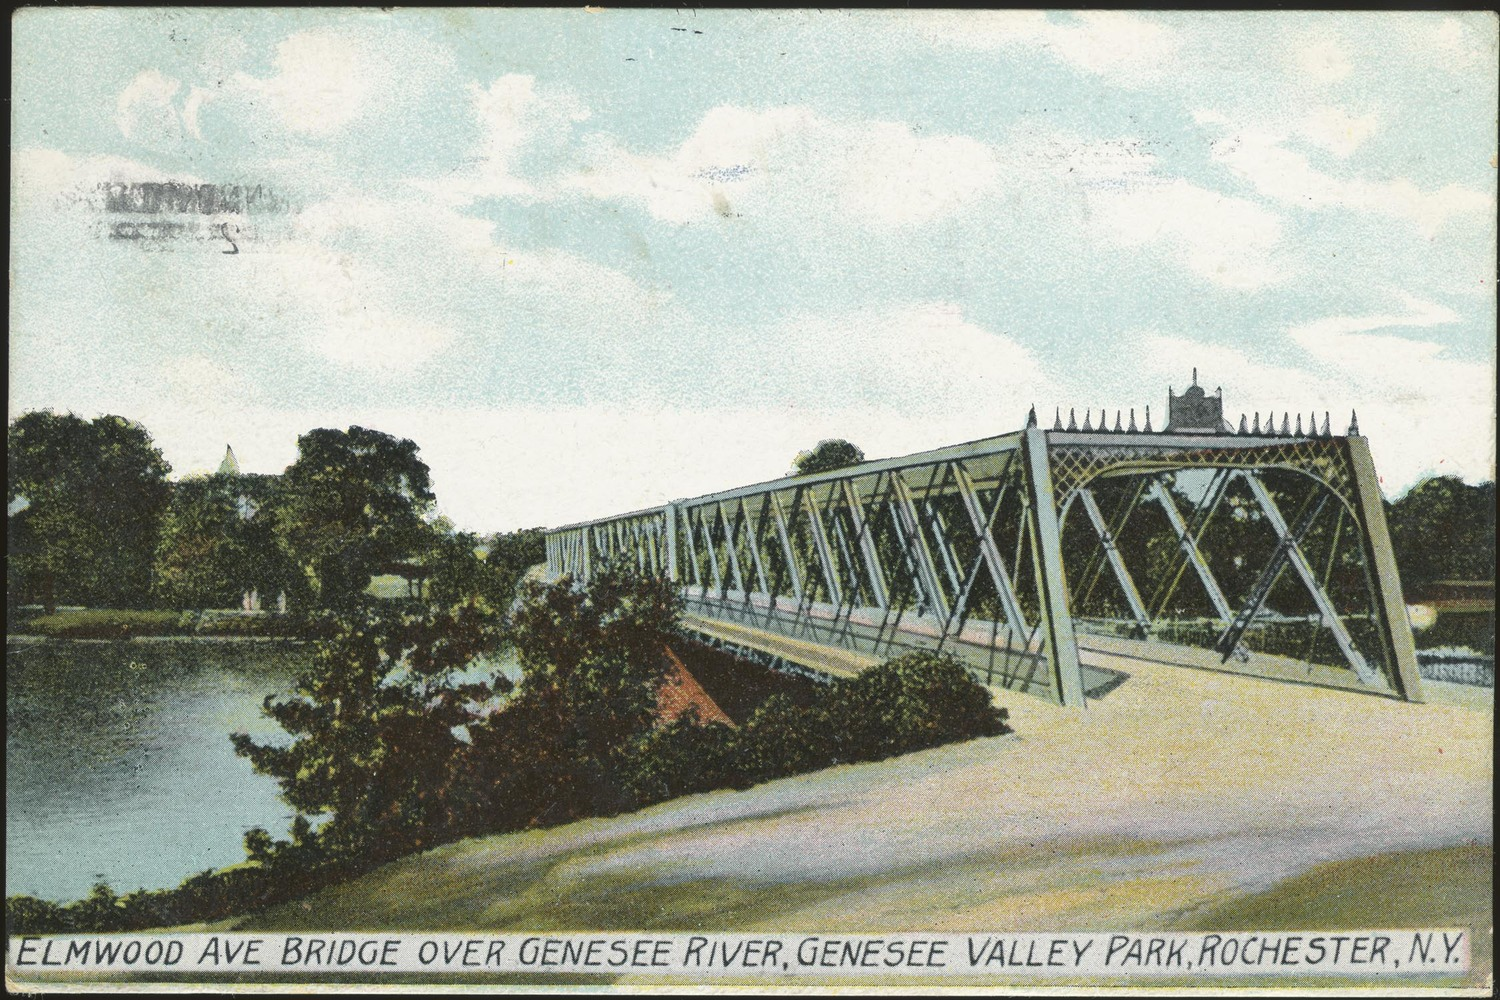 Elmwood Avenue Bridge Over Genesee River, Genesee Valley Park, Rochester, N.Y.